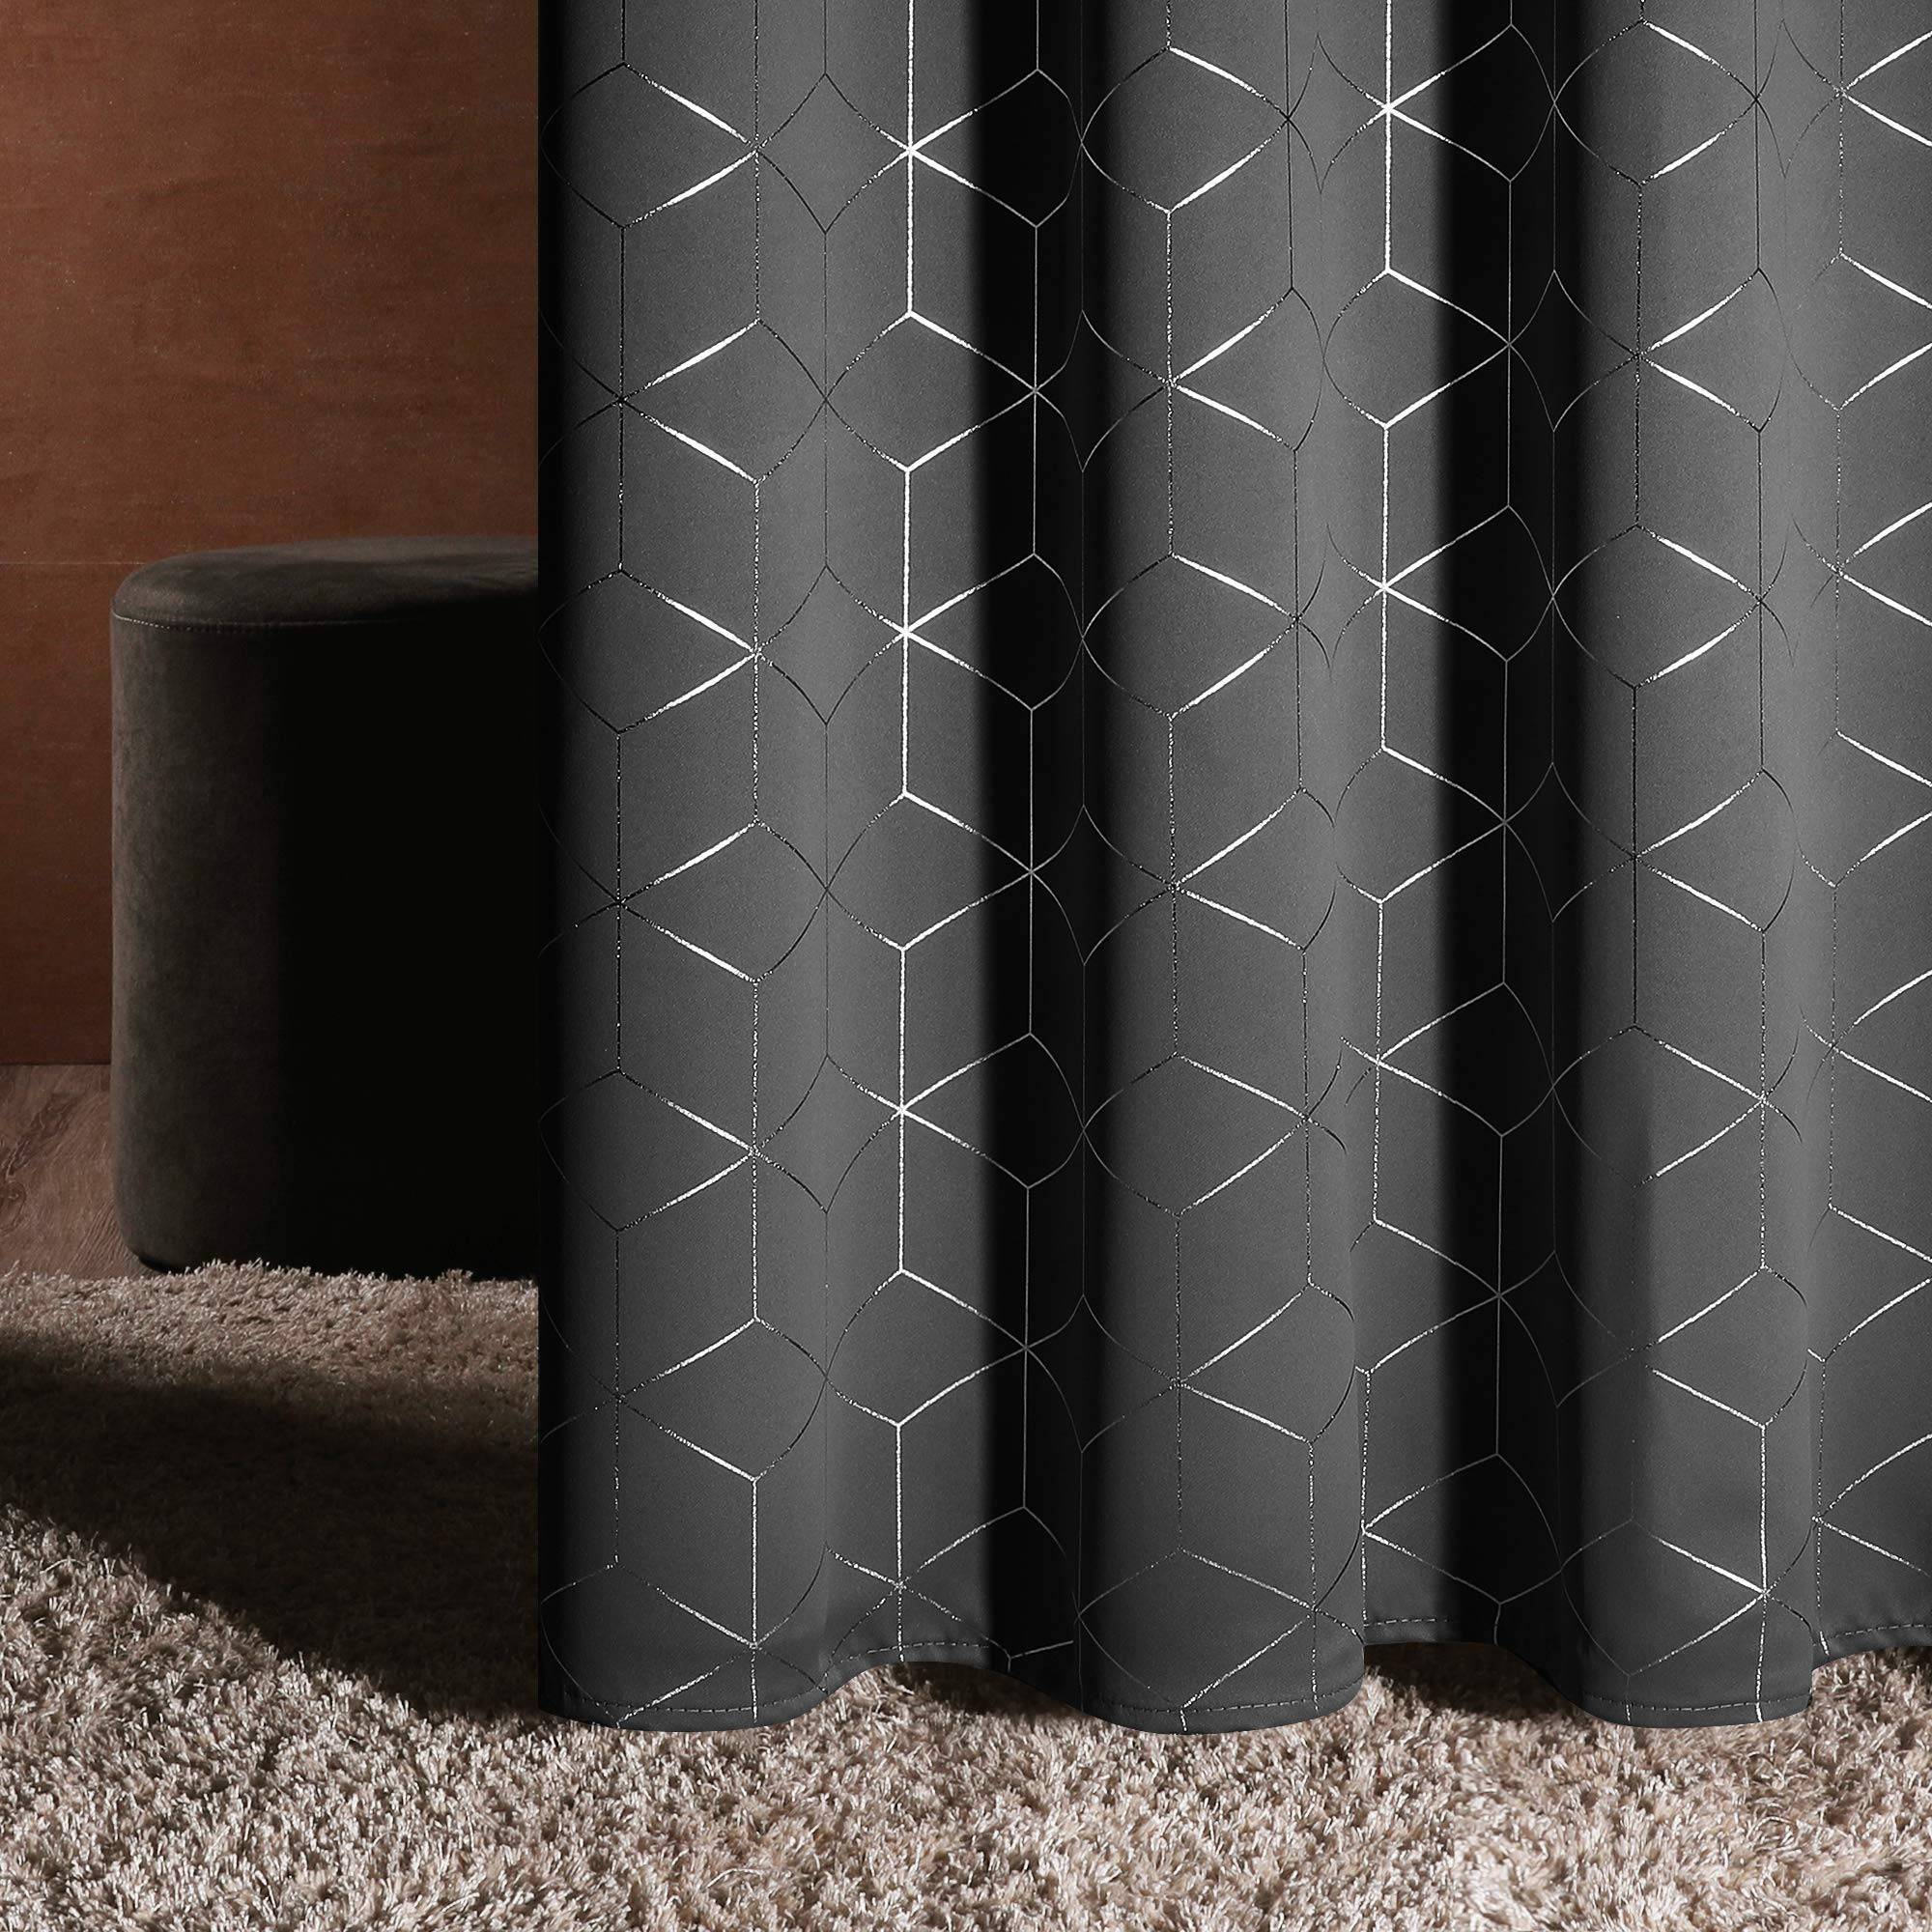 Deconovo Silver Diamond Foil Print Blackout Curtains Room Darkening Thermal Insulated Curtain Panels Grommet for Living Room Light Grey 52x63 Inch 2 Panels